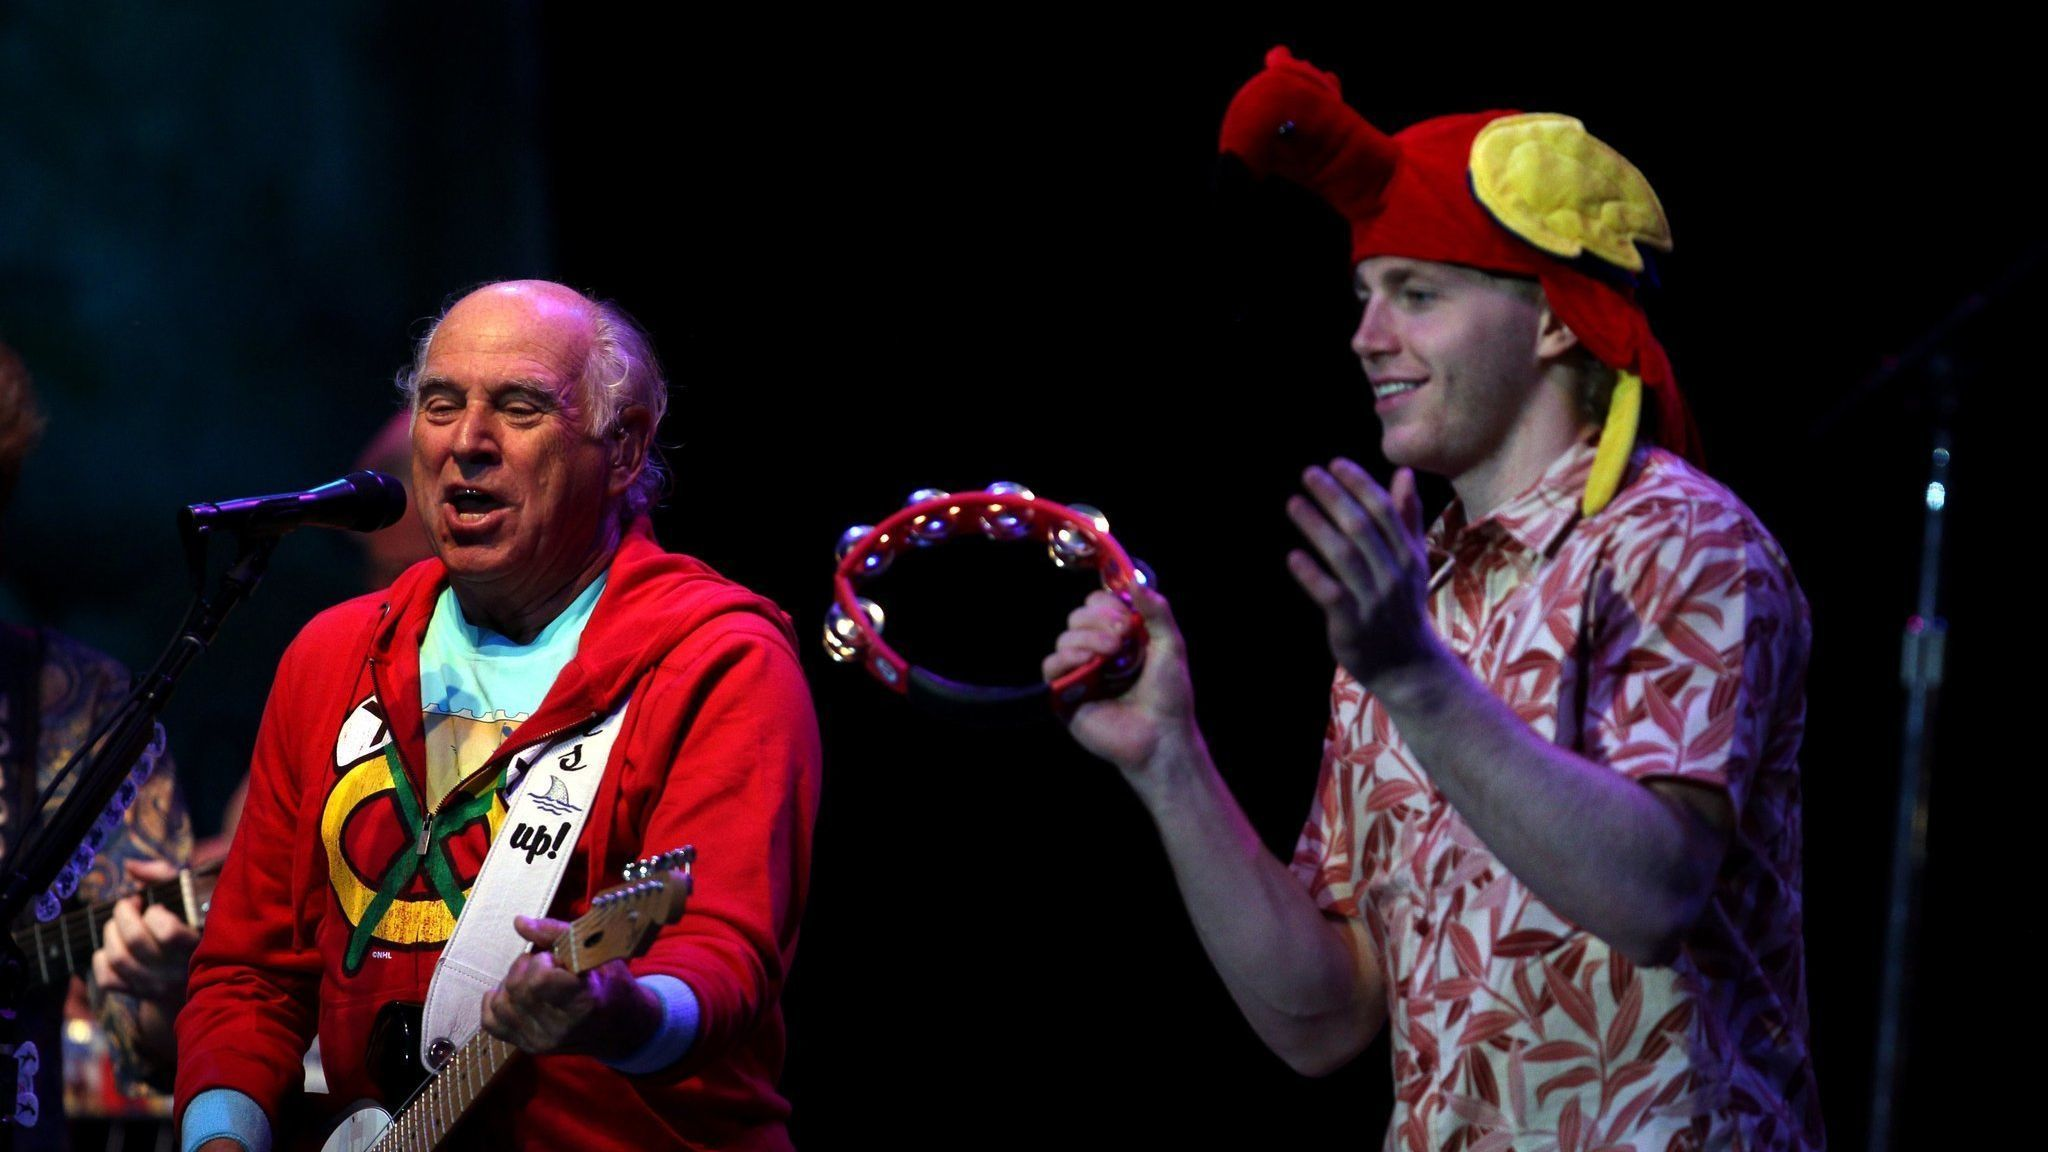 Patrick Kane's friendship with Jimmy Buffett comes full circle with the Blackhawks' 'Margaritaville' game tonight